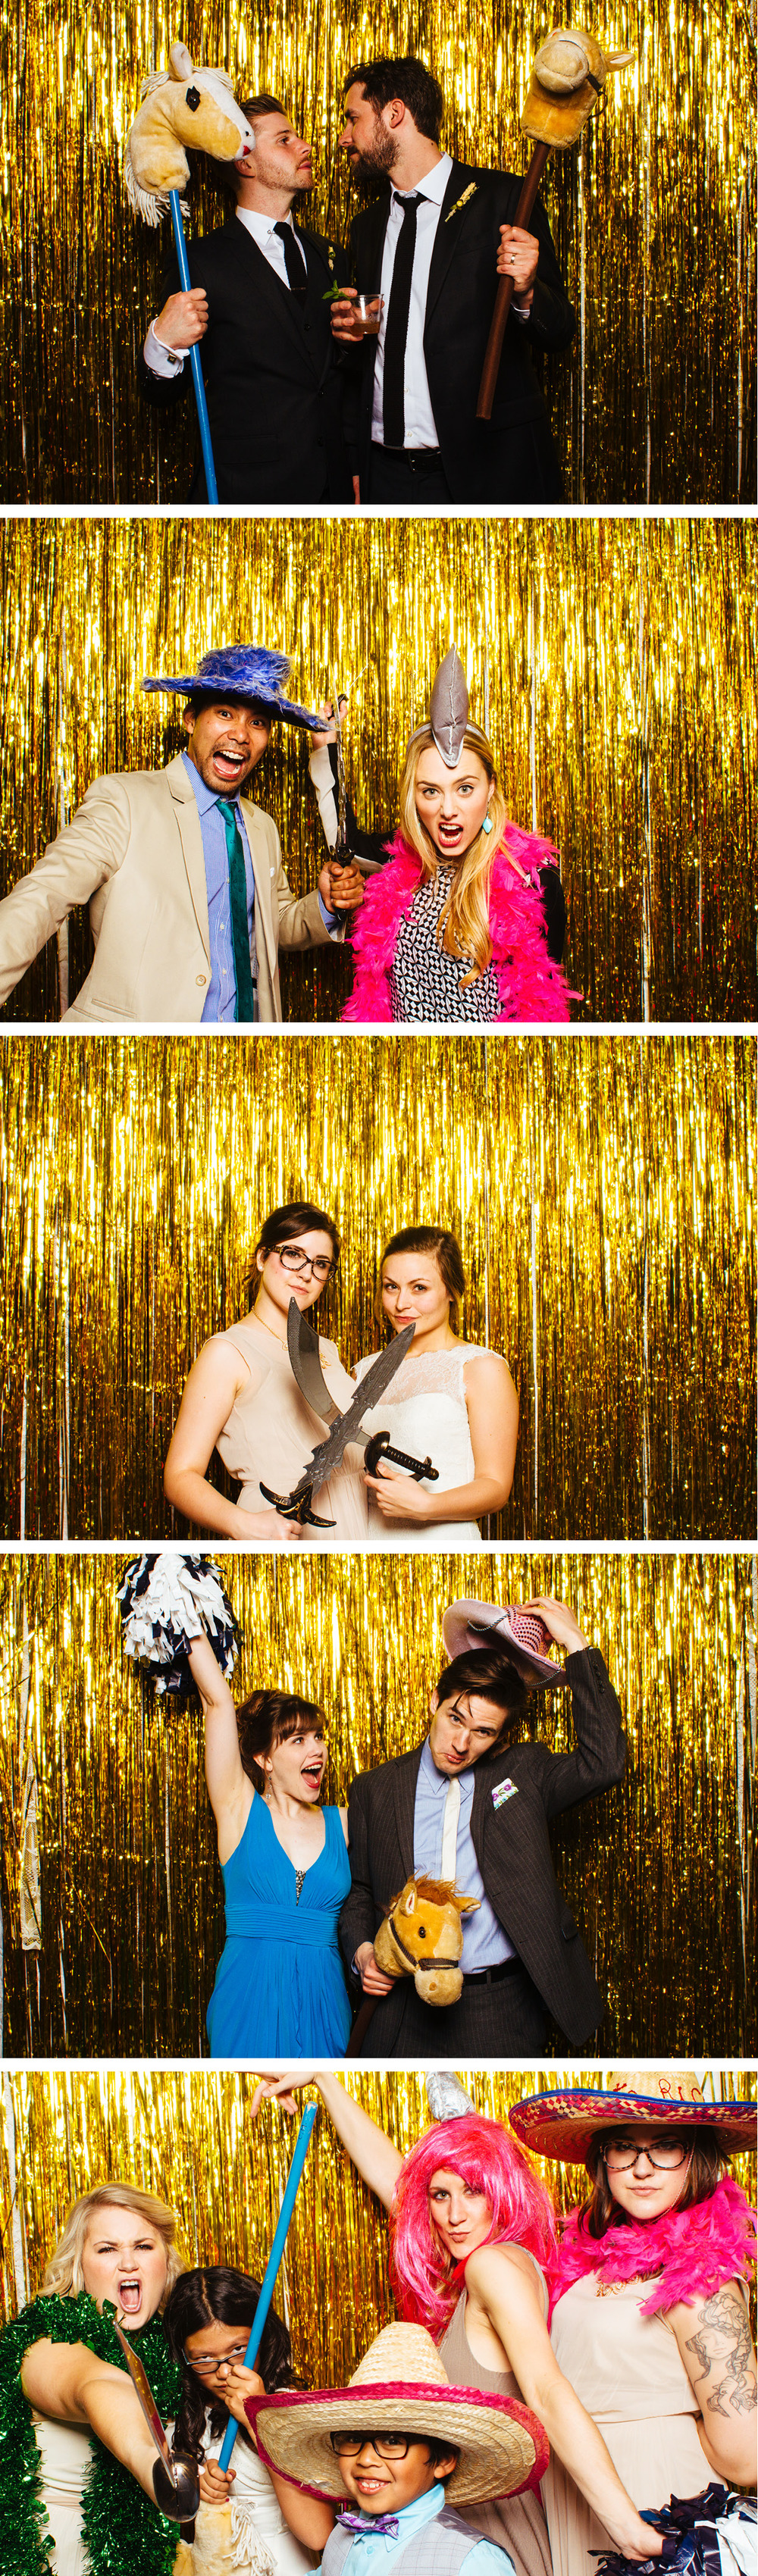 CK-Photo-Nashville-Wedding-Photographer-Photobooth-DL8.jpg